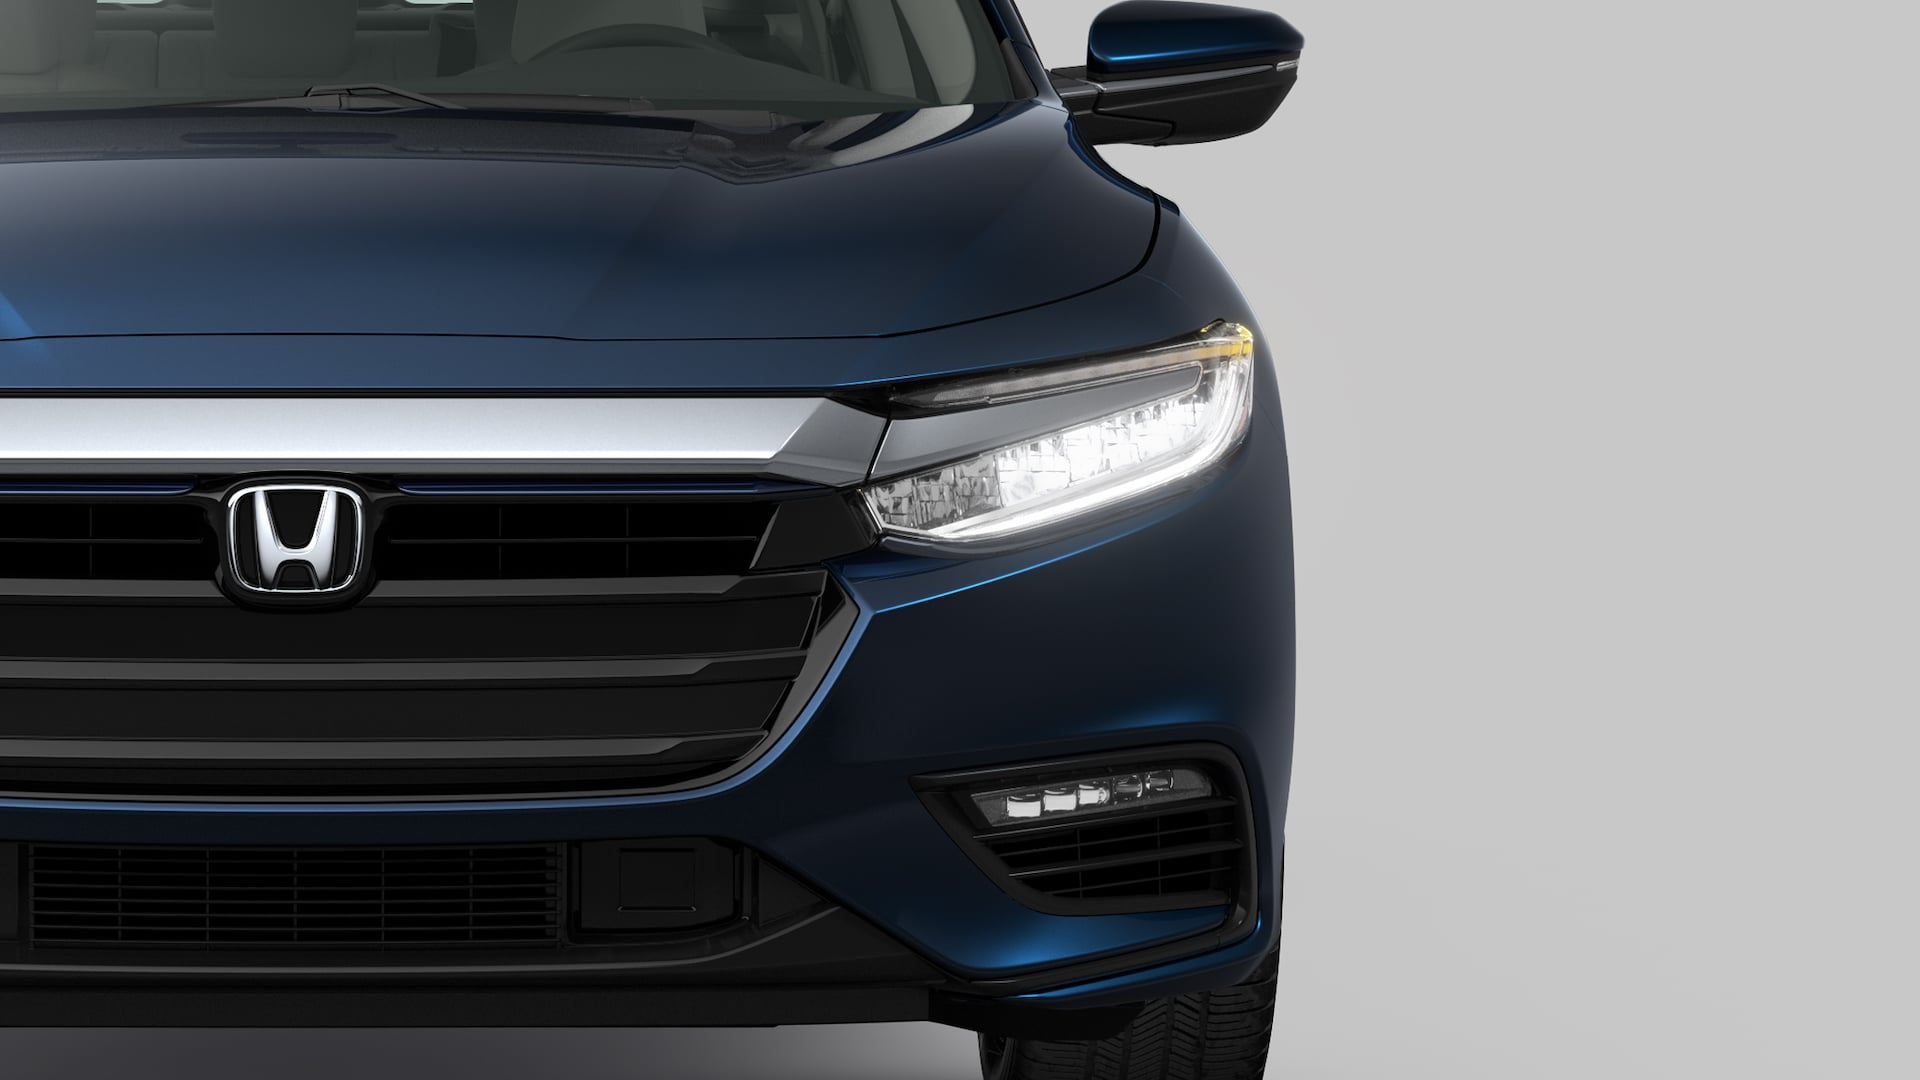 Front view of 2020 Honda Insight in Cosmic Blue Metallic.